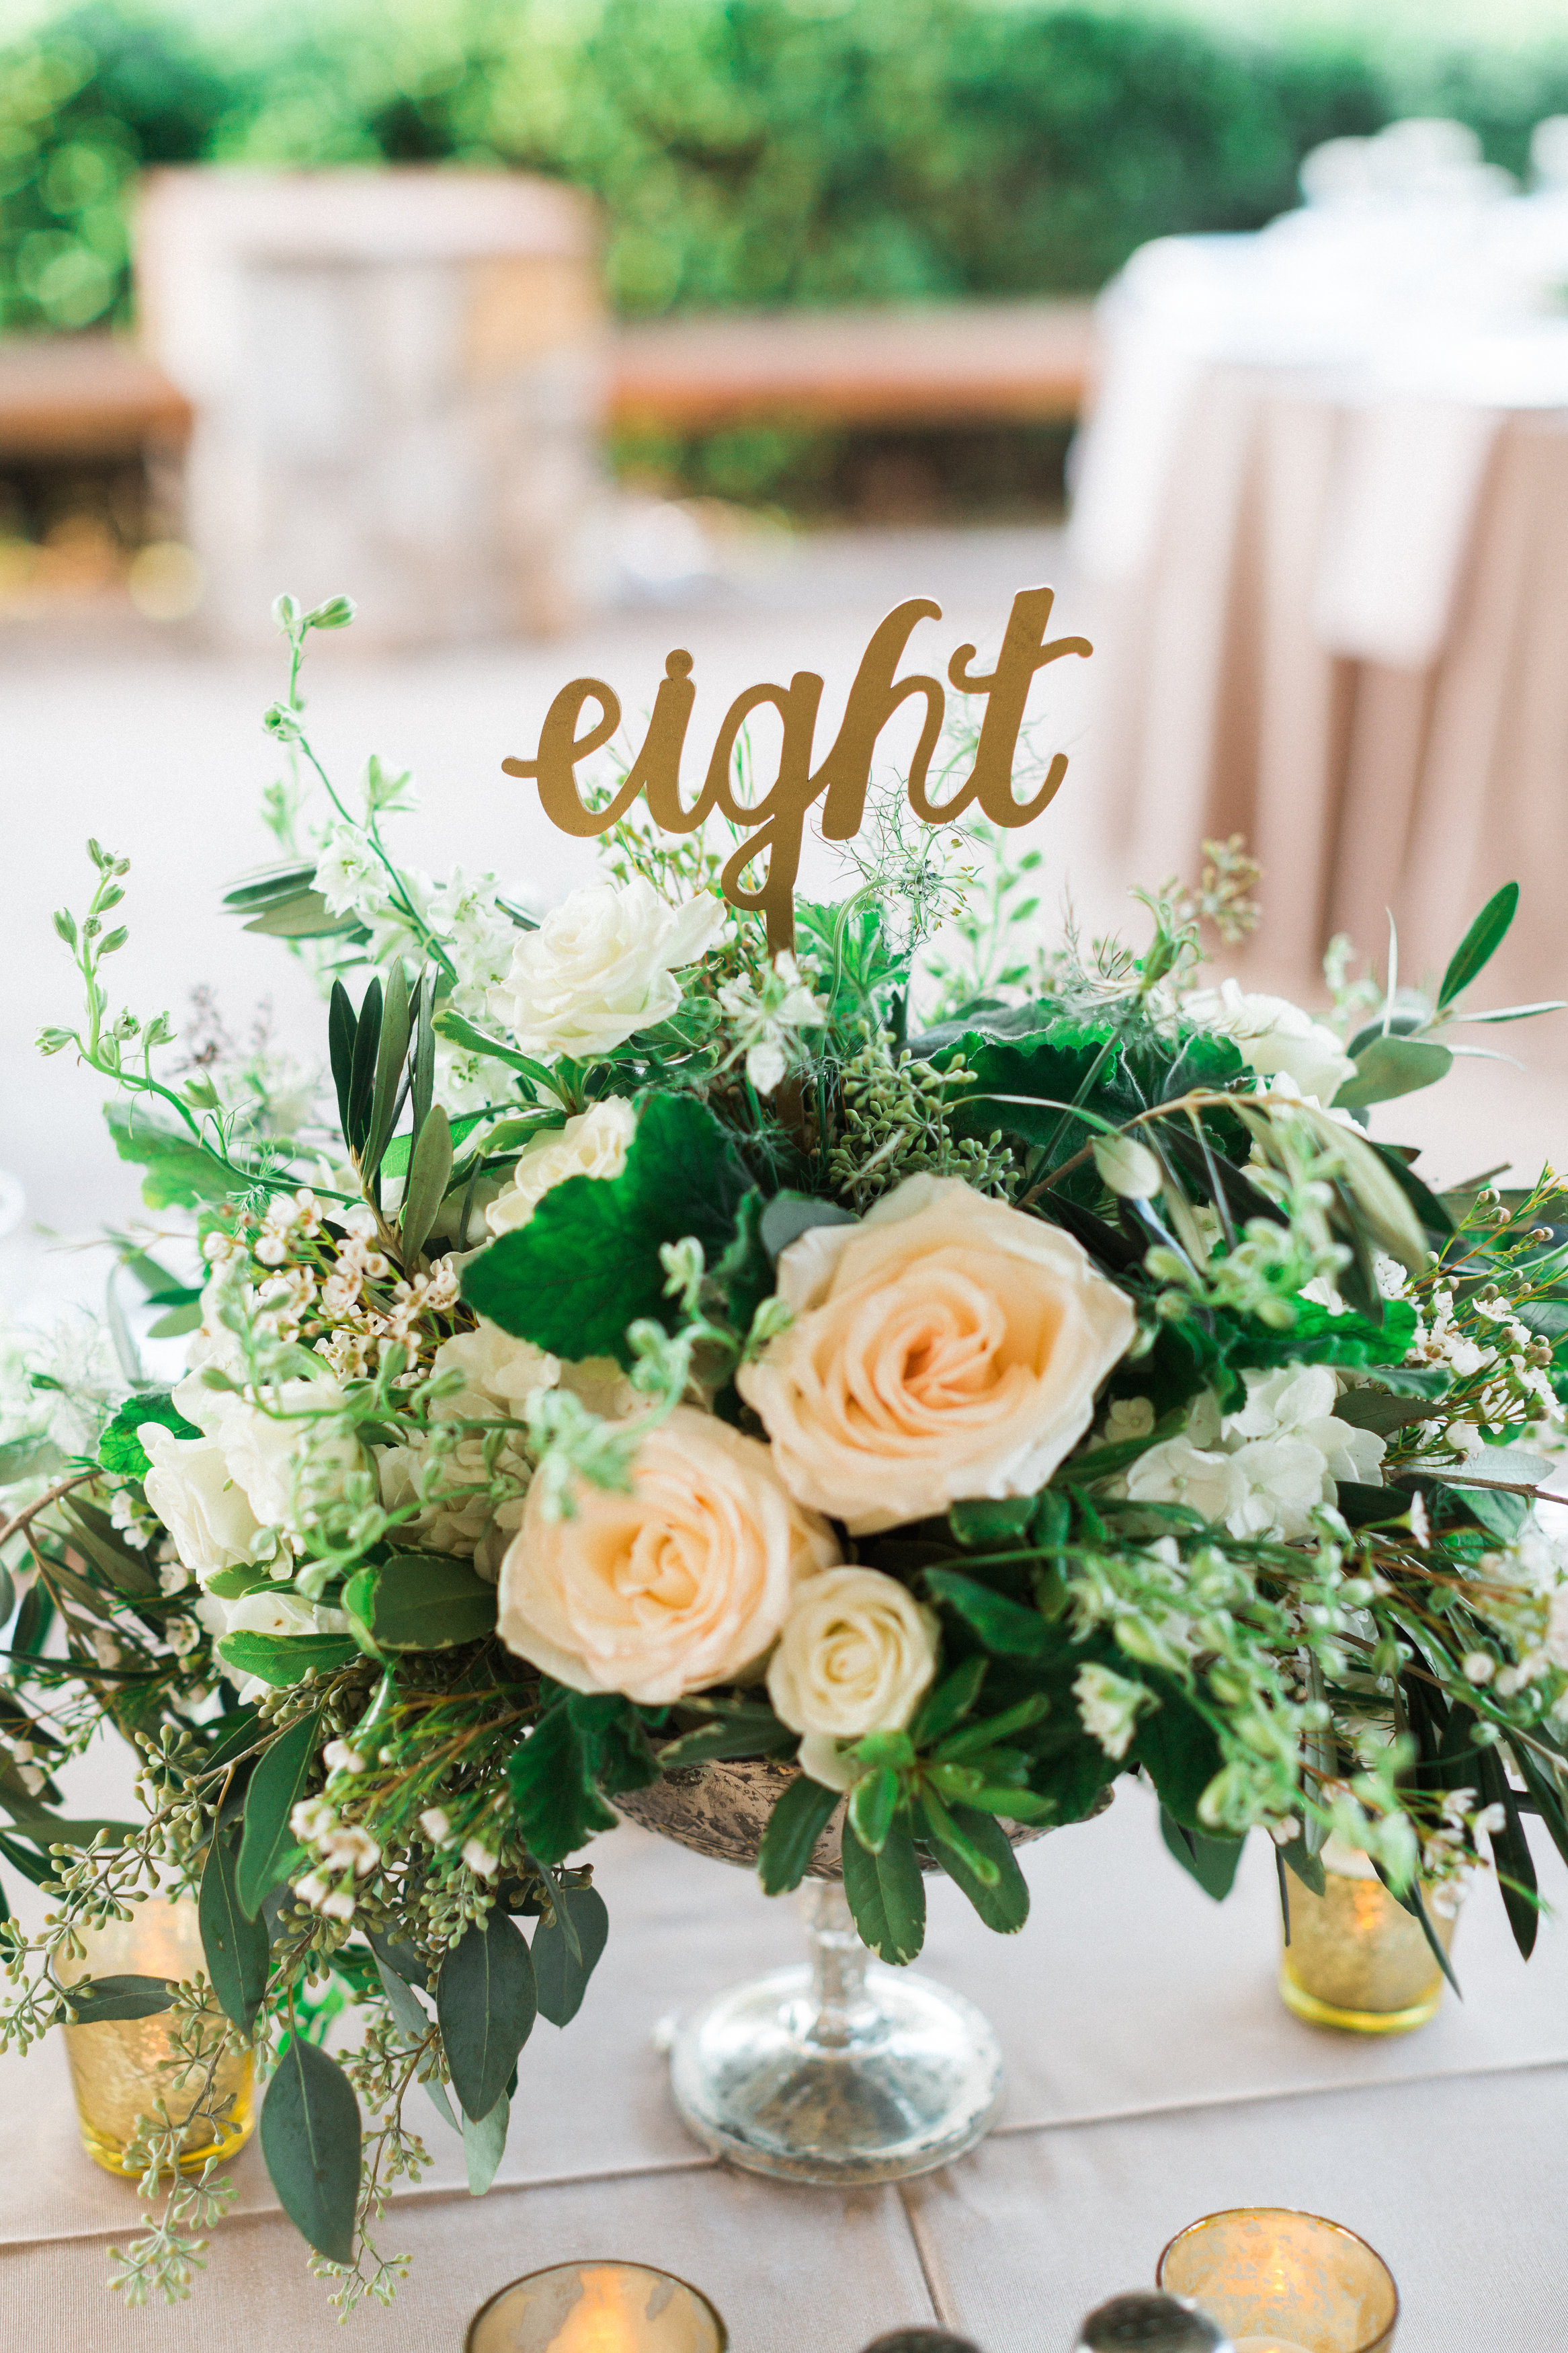 Mercury Glass Centerpiece With Laser Cut Table Number Bouquets Of Austin